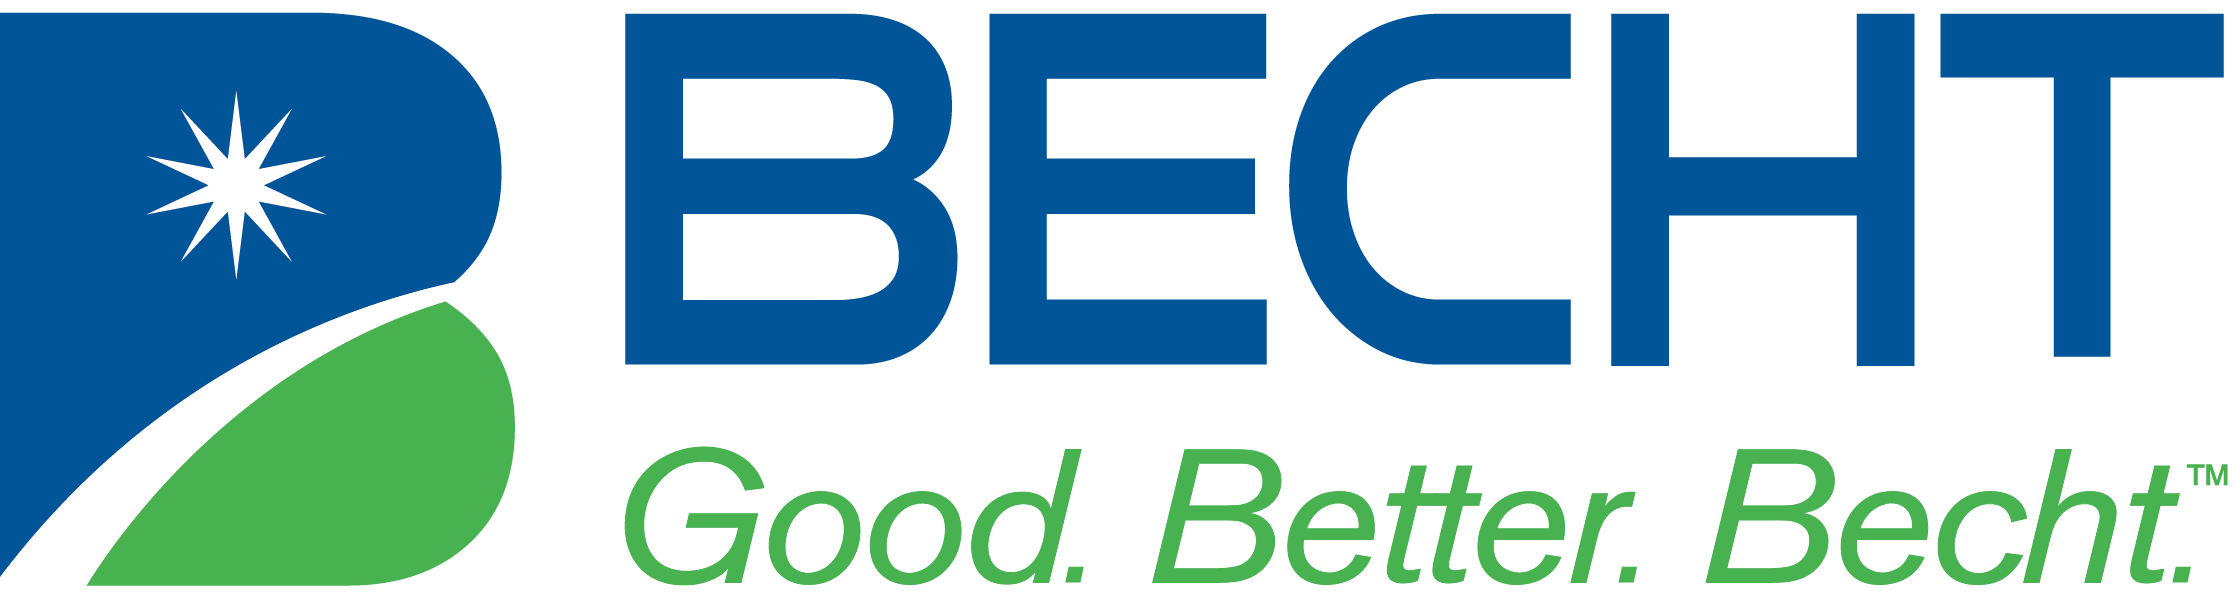 Becht Pono Corrosion & Materials Expertise